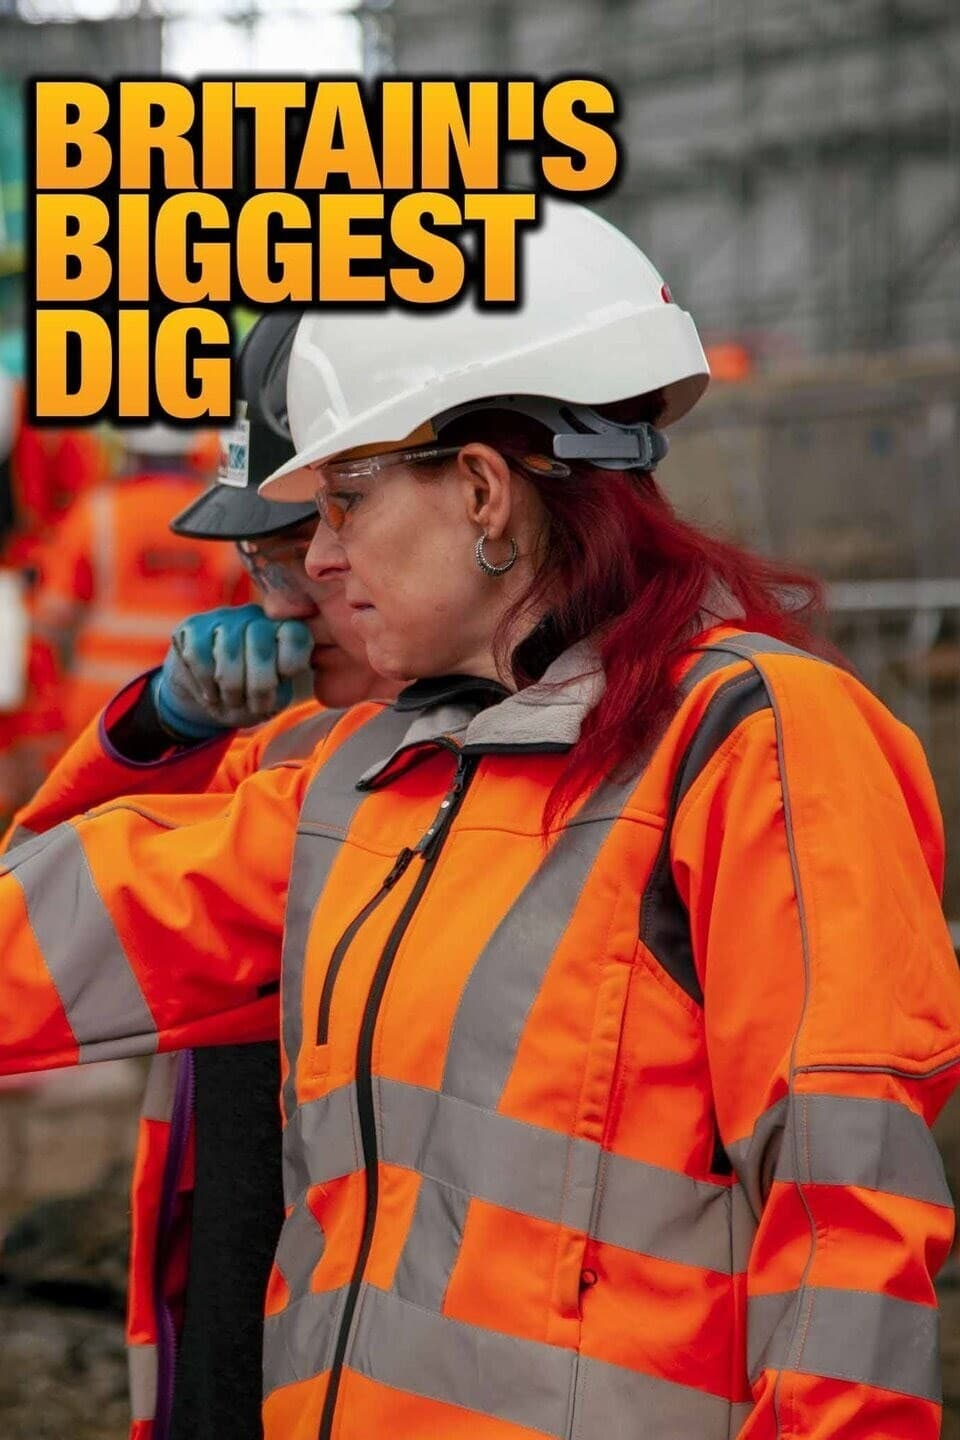 Britain's Biggest Dig TV Shows About Logic